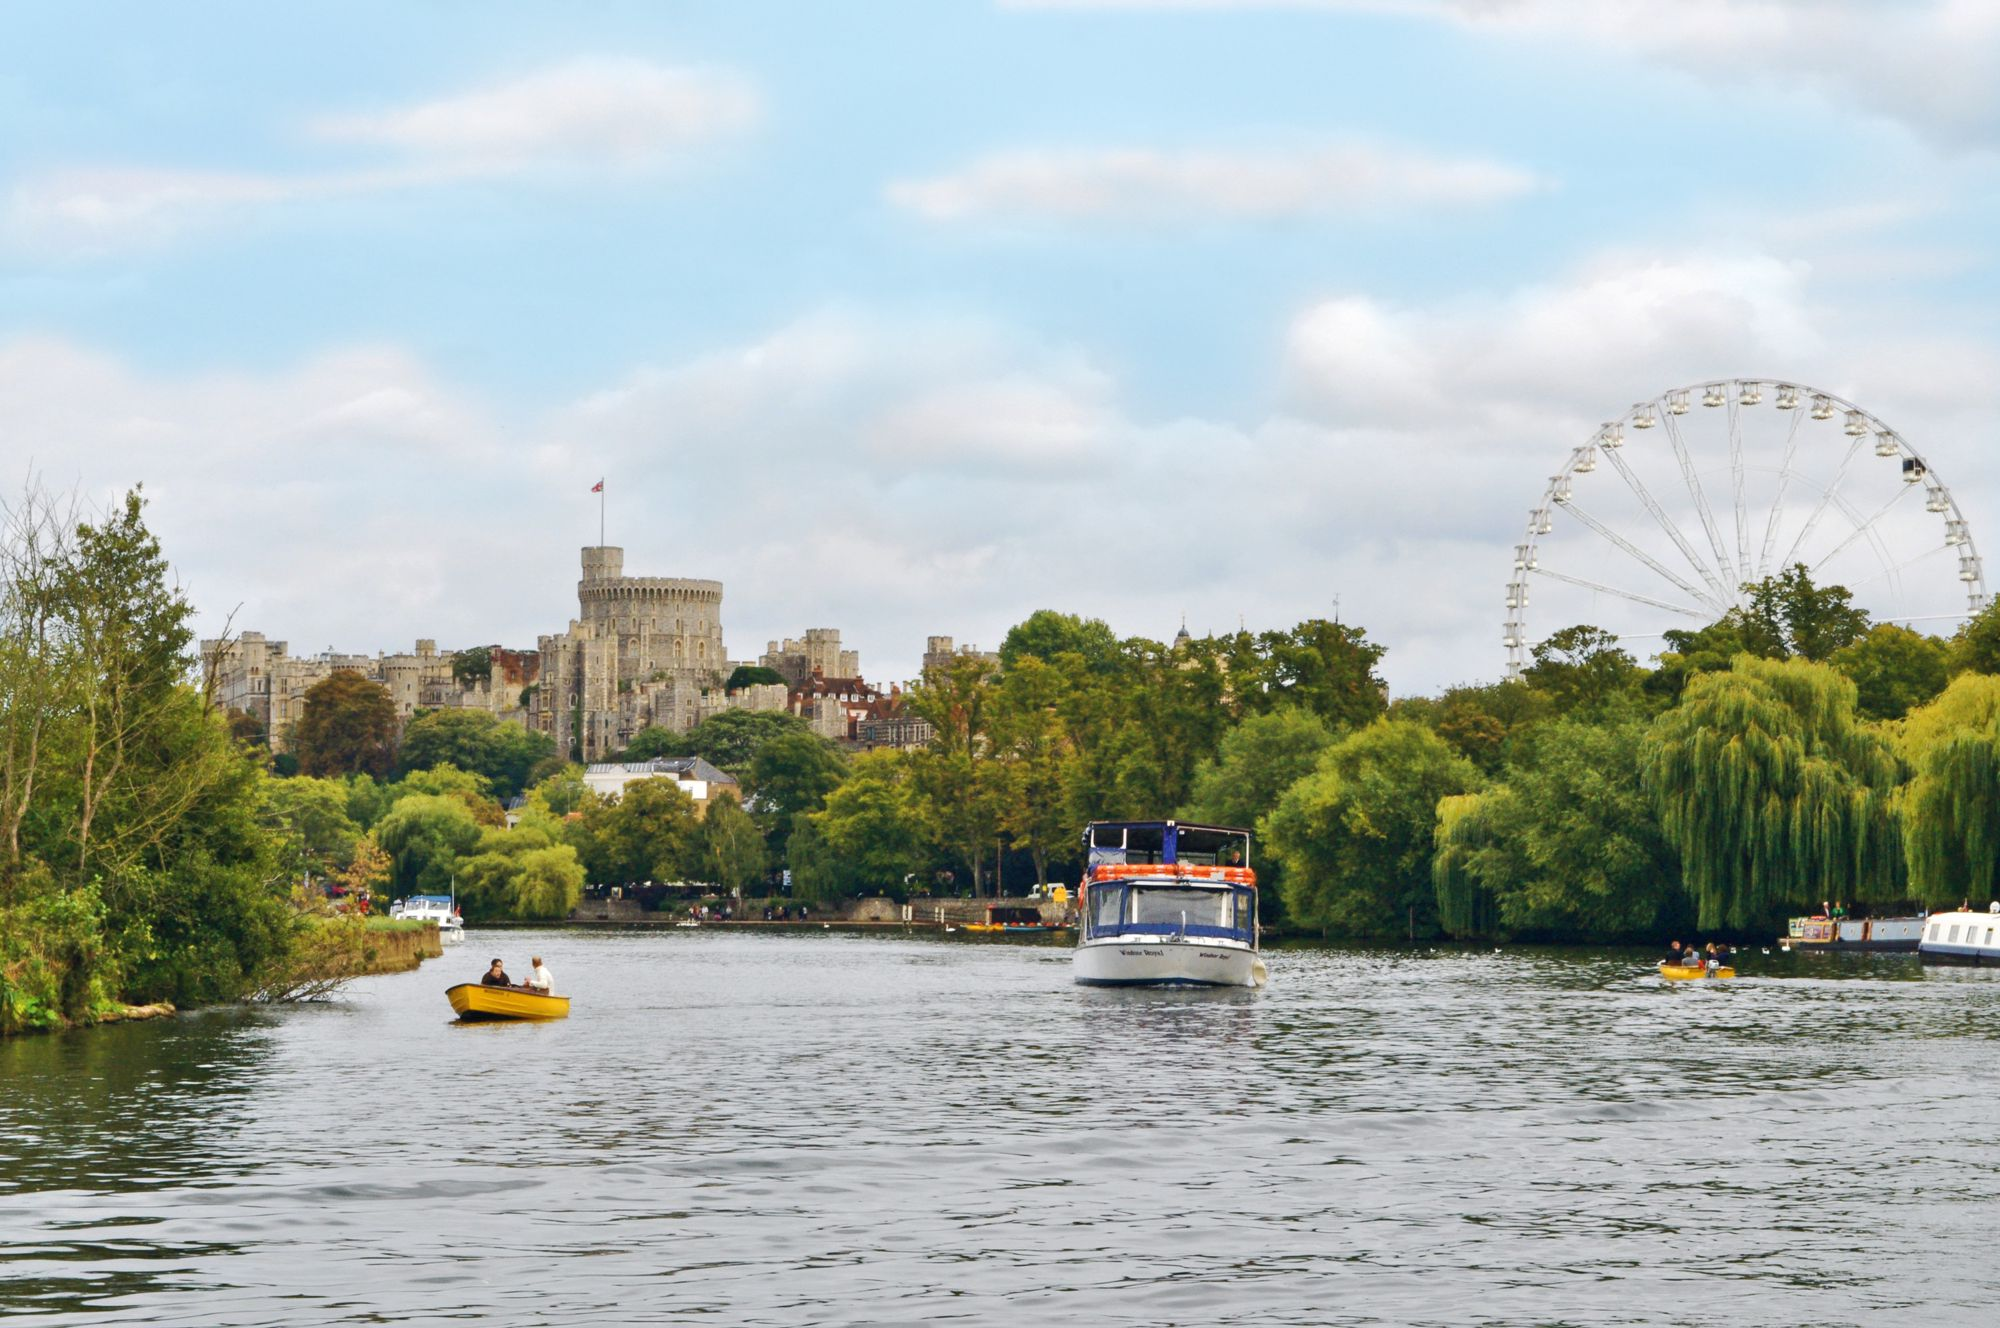 Hotels, B&Bs & Self-Catering in Windsor